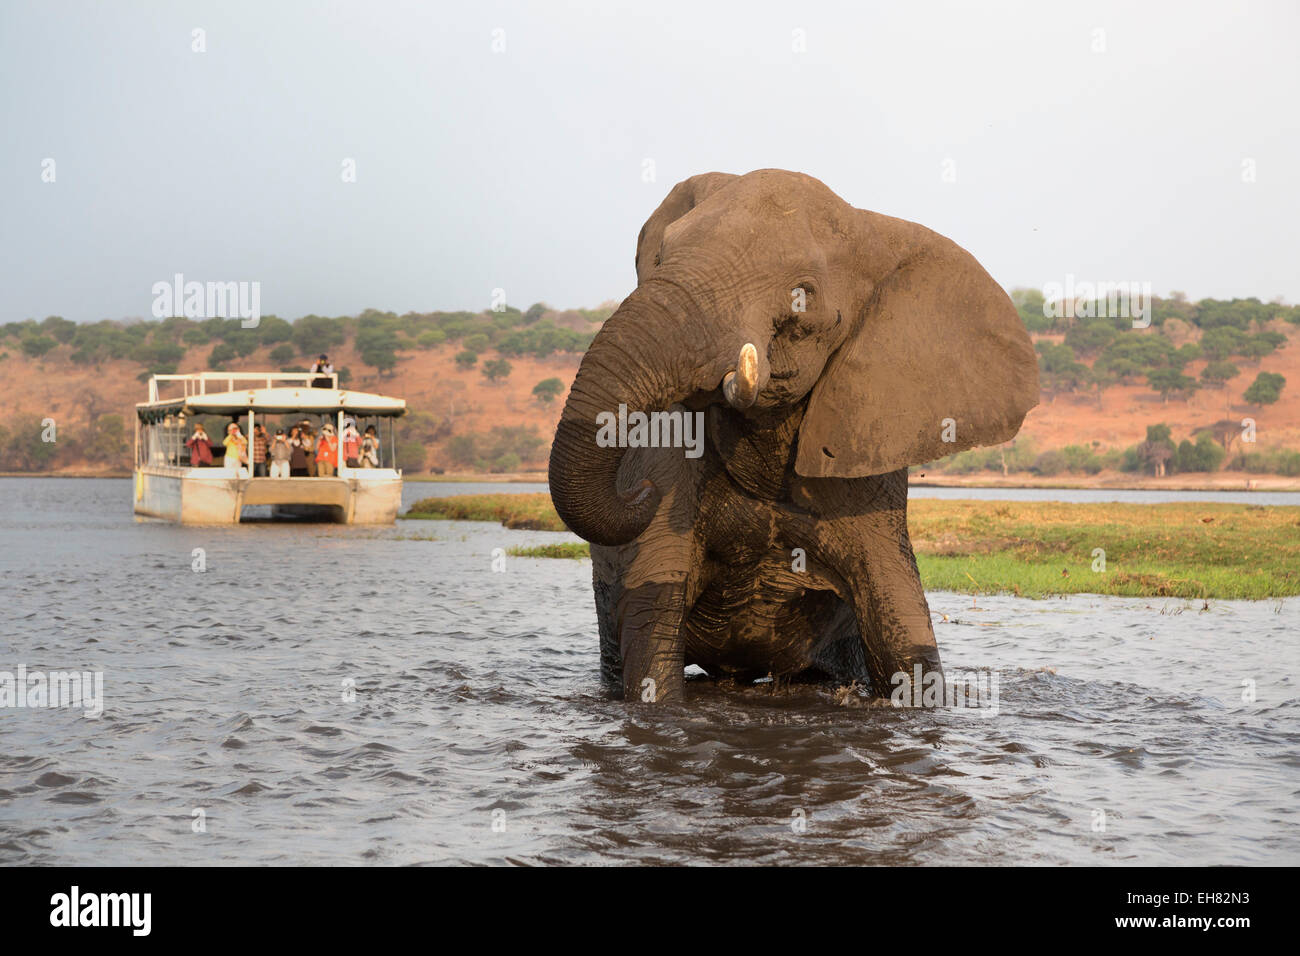 African elephant (Loxodonta africana) and tourists, Chobe National Park, Botswana, Africa - Stock Image